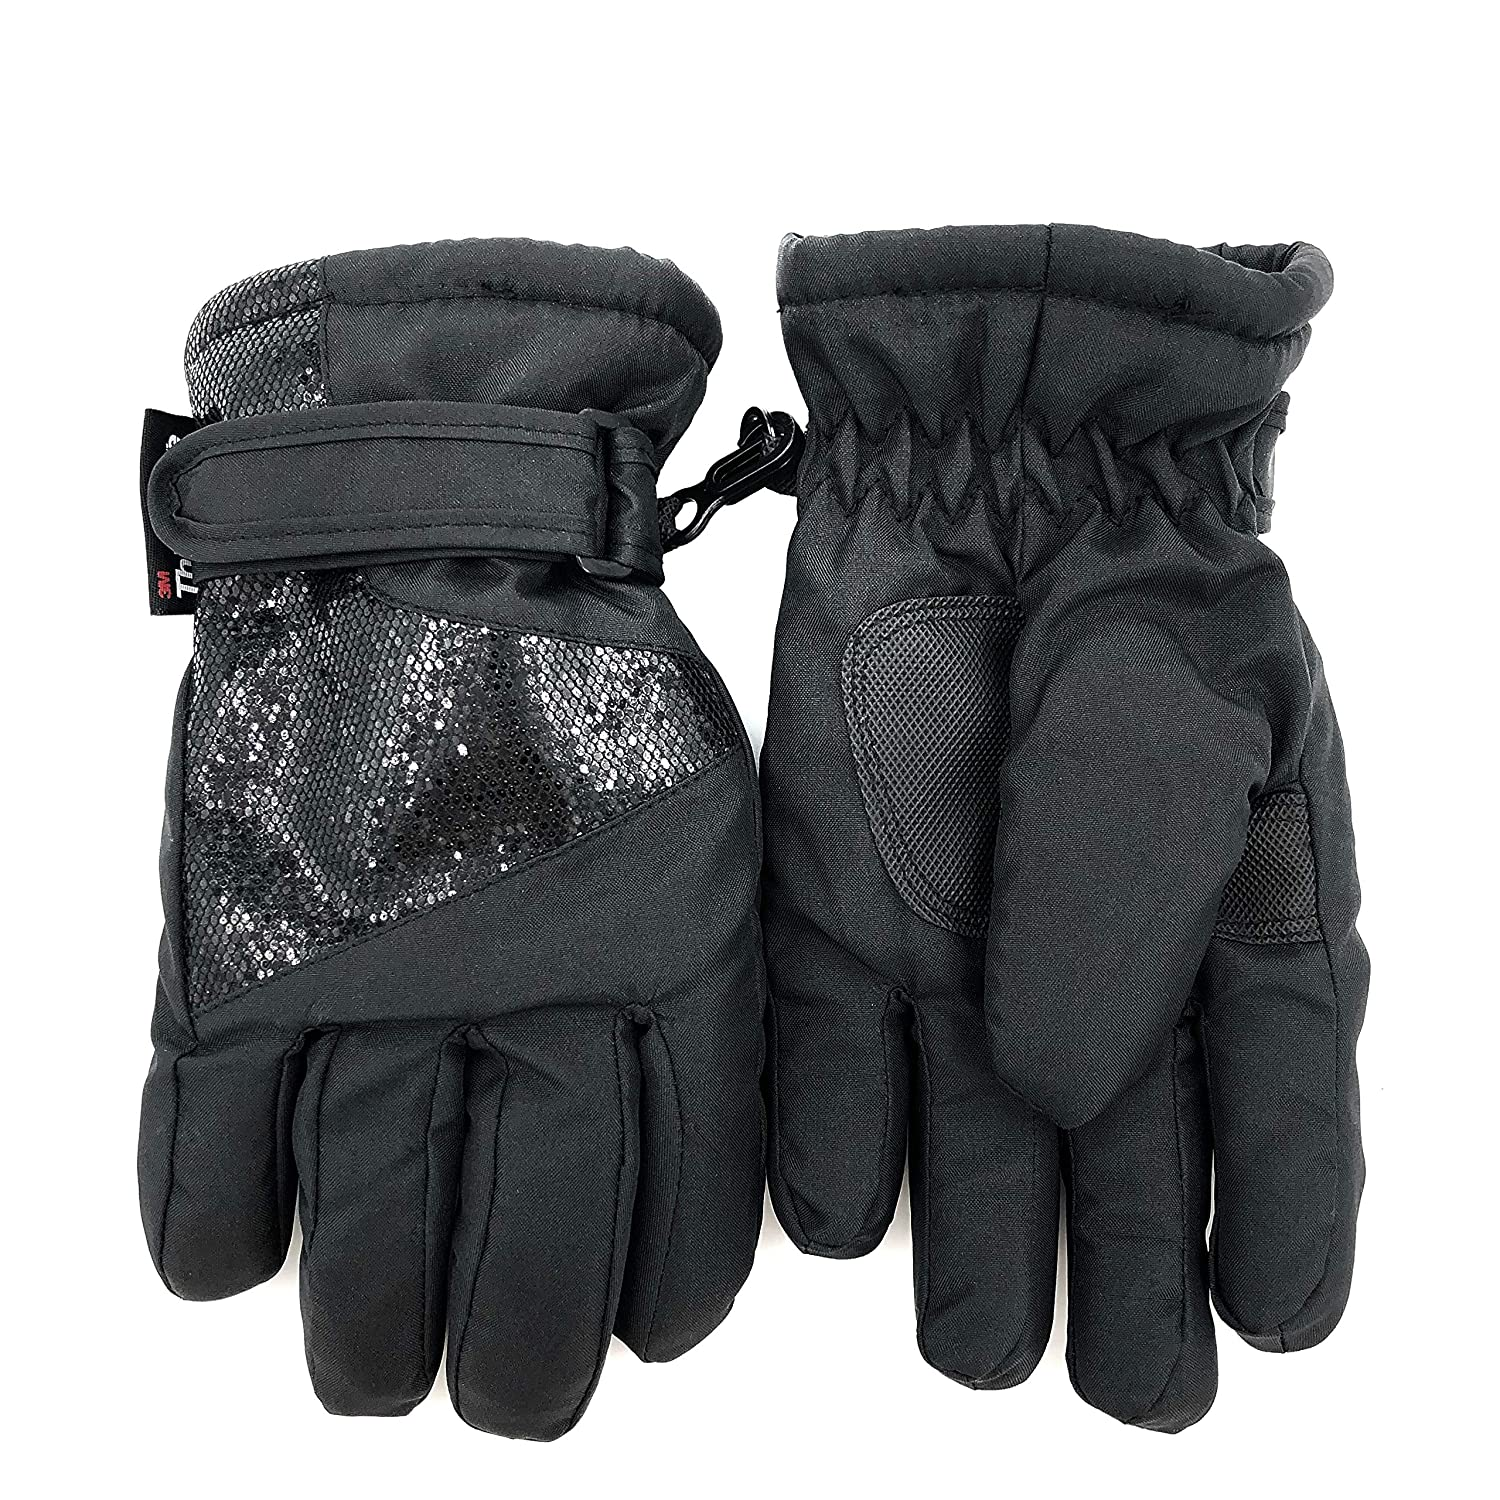 accsa Outdoor Kids Girl Breathable 3M Thinsulate Black Cute Glitter Ski Glove with Water Proof Fleece Lined Age 3-6